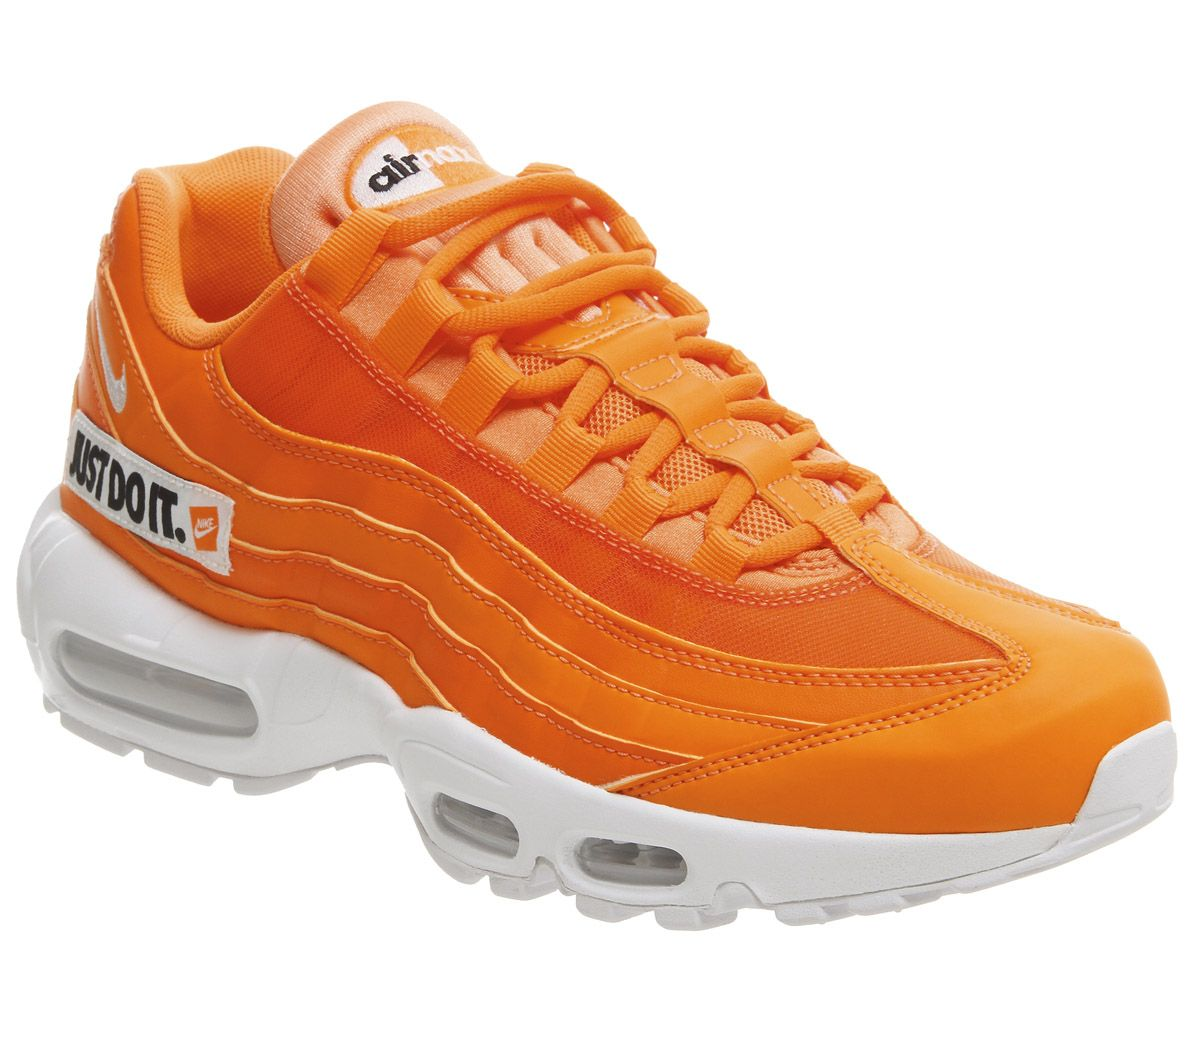 231076ec0e245 Nike Air Max 95 Total Orange White Black Jdi - Unisex Sports